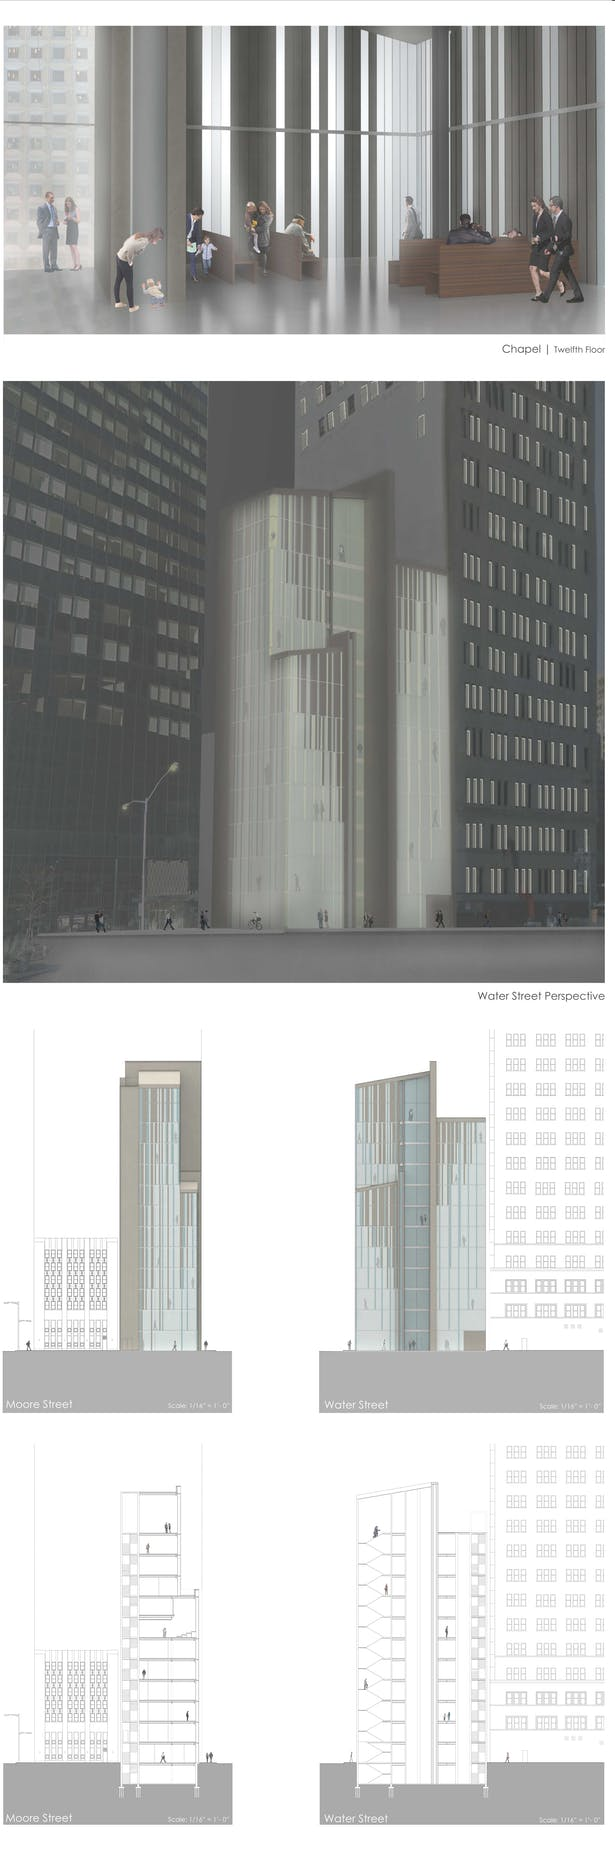 URBAN: Perspectives + Section / Elevations